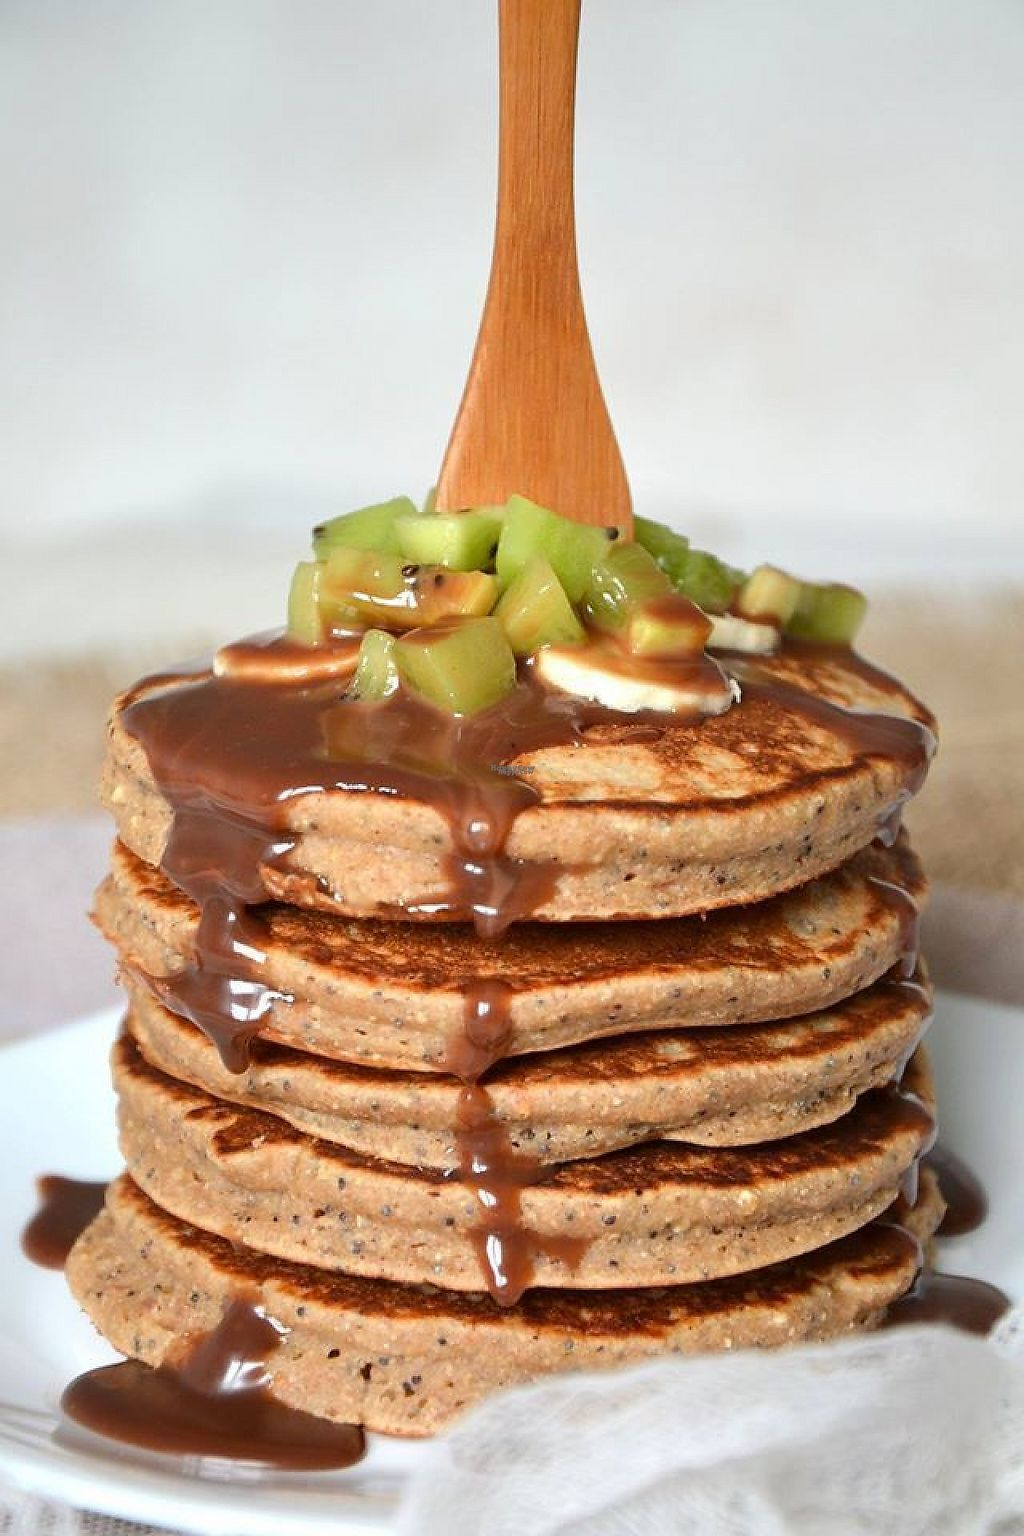 """Photo of La Vie Claire  by <a href=""""/members/profile/community"""">community</a> <br/>vegan pancakes  <br/> February 4, 2017  - <a href='/contact/abuse/image/68789/221836'>Report</a>"""